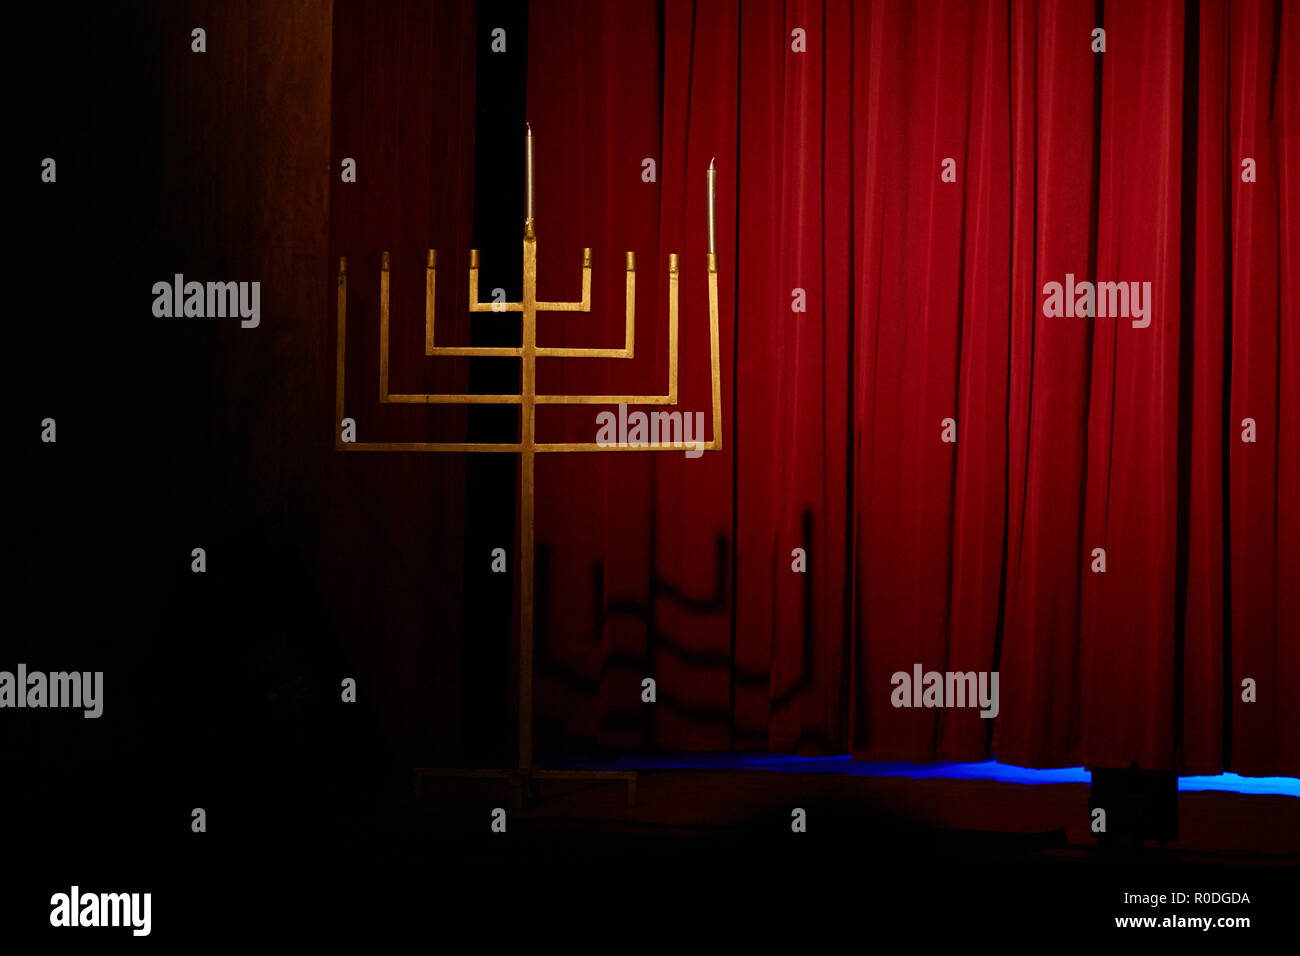 Judaism and jewish faith concept with close up on a menorah with candles for Hanukkah against defocused lights - Stock Image